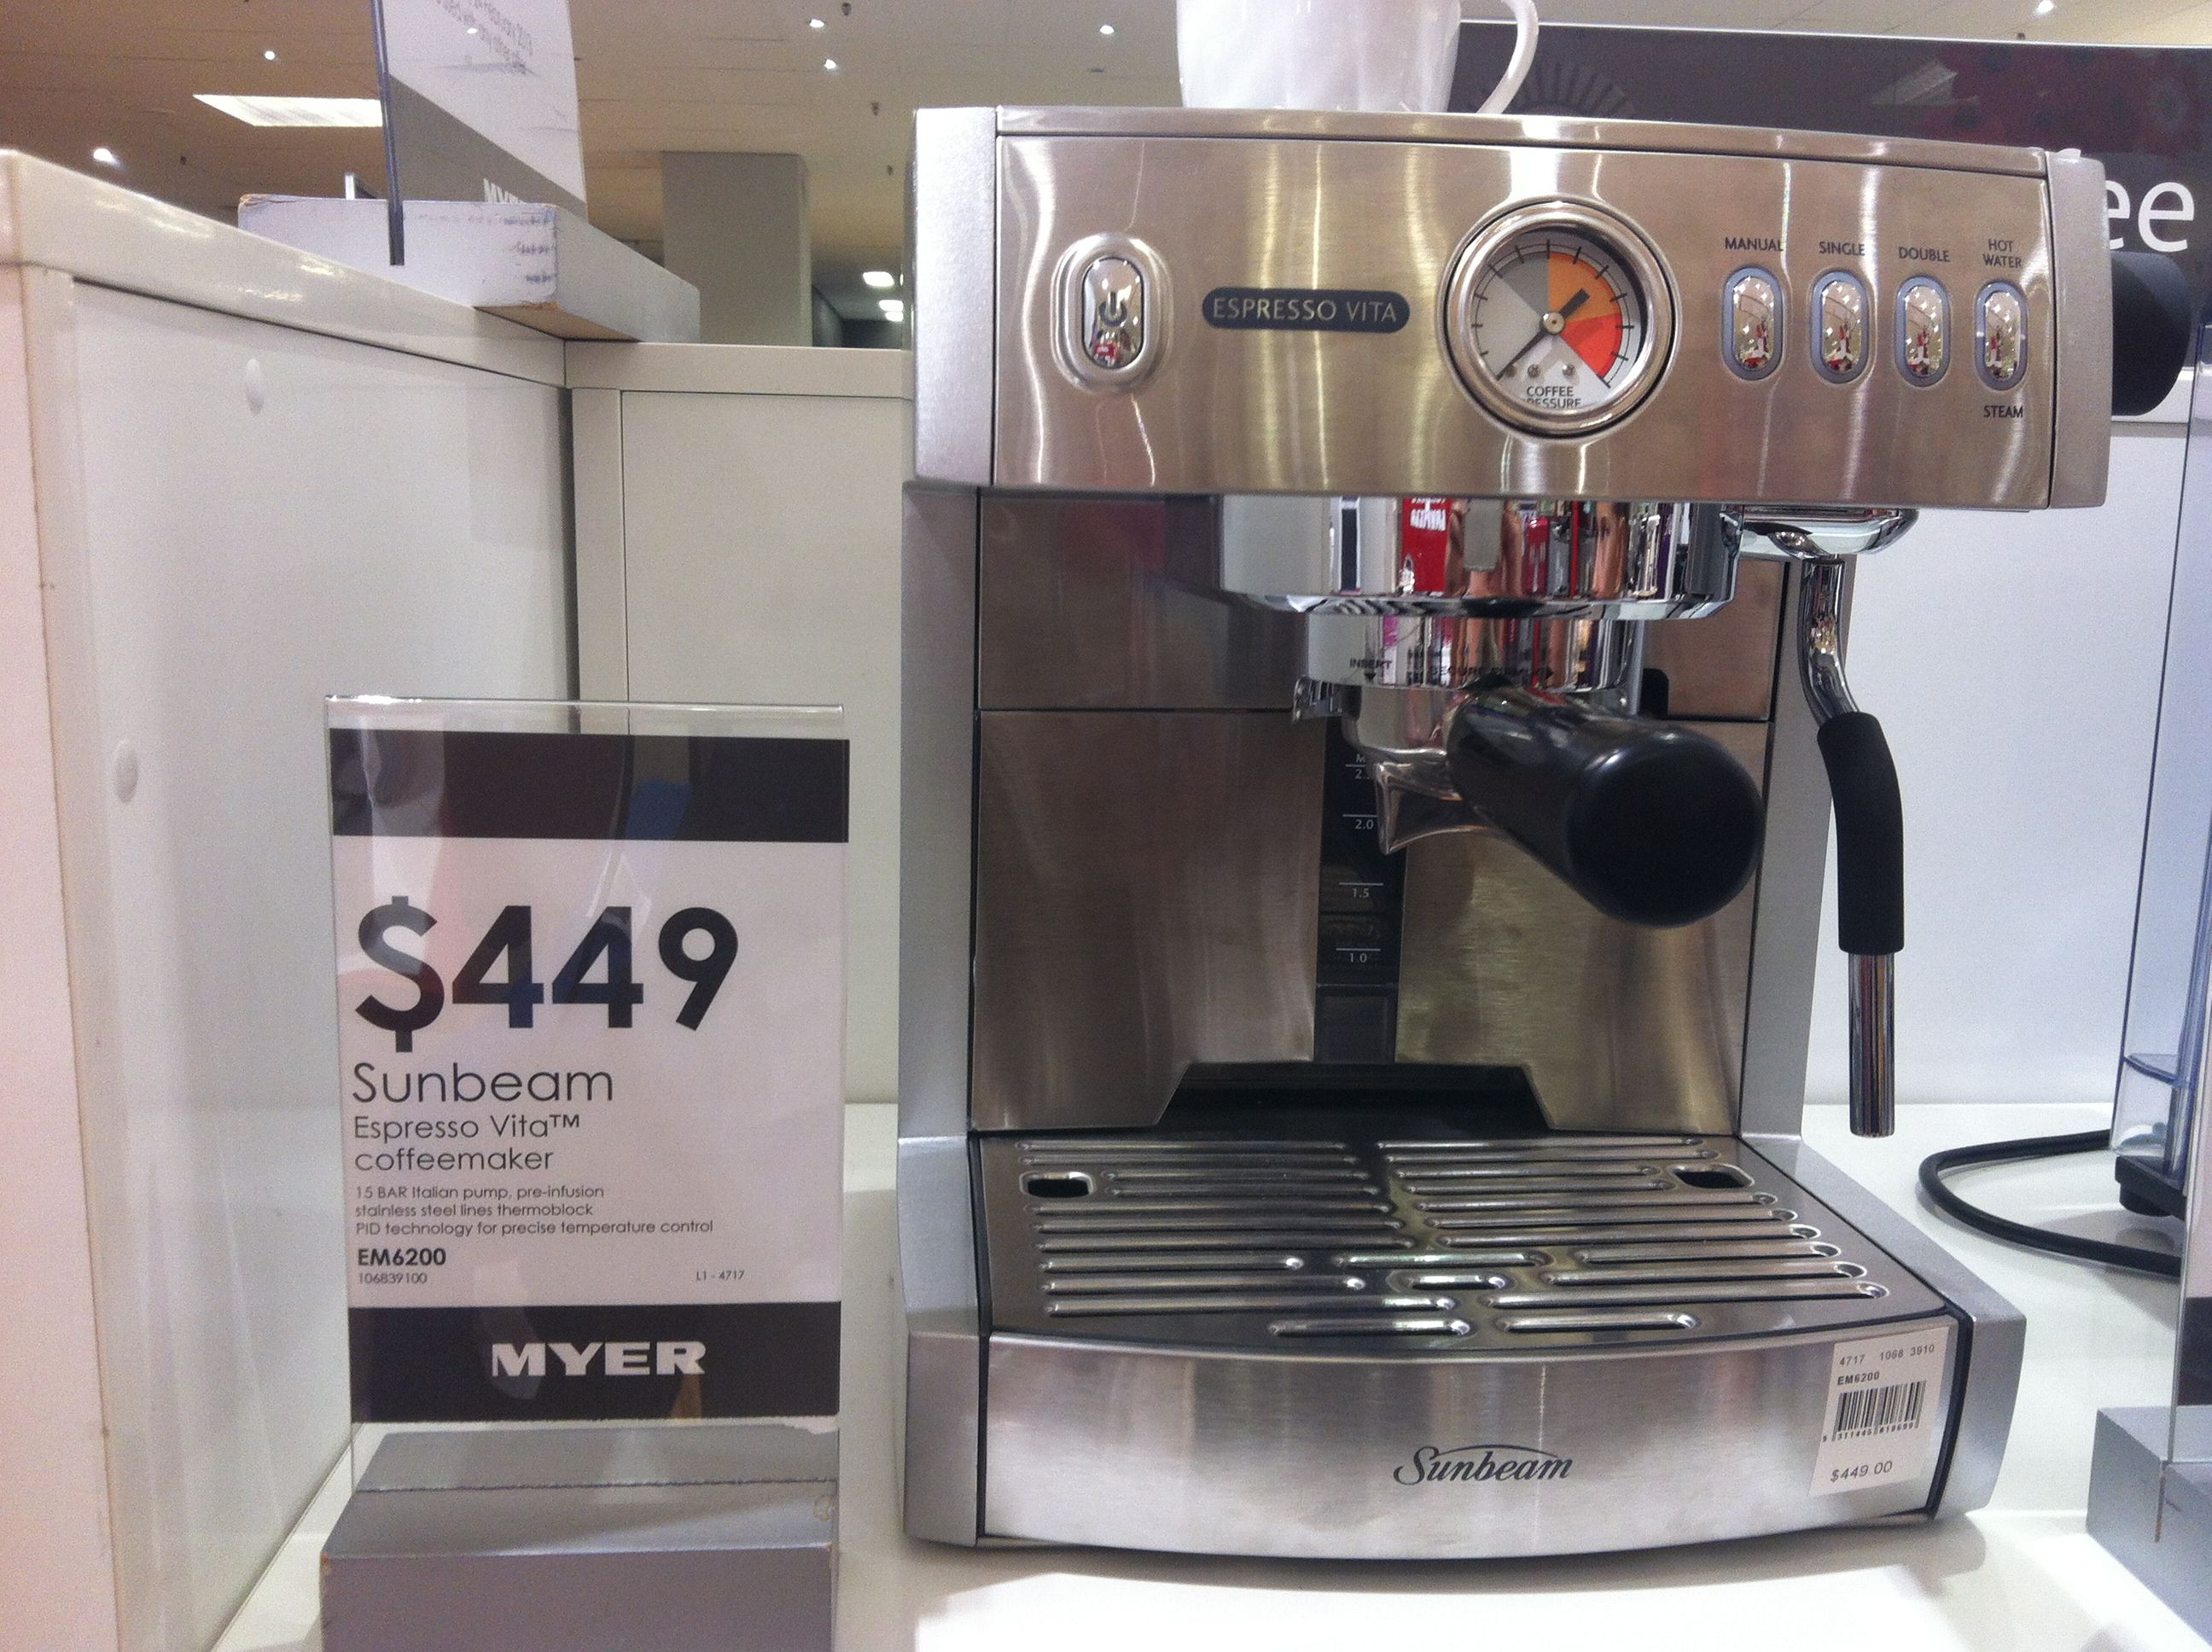 Leonie, Sunbeam Espresso Vita Coffee Machine, Myer, 449